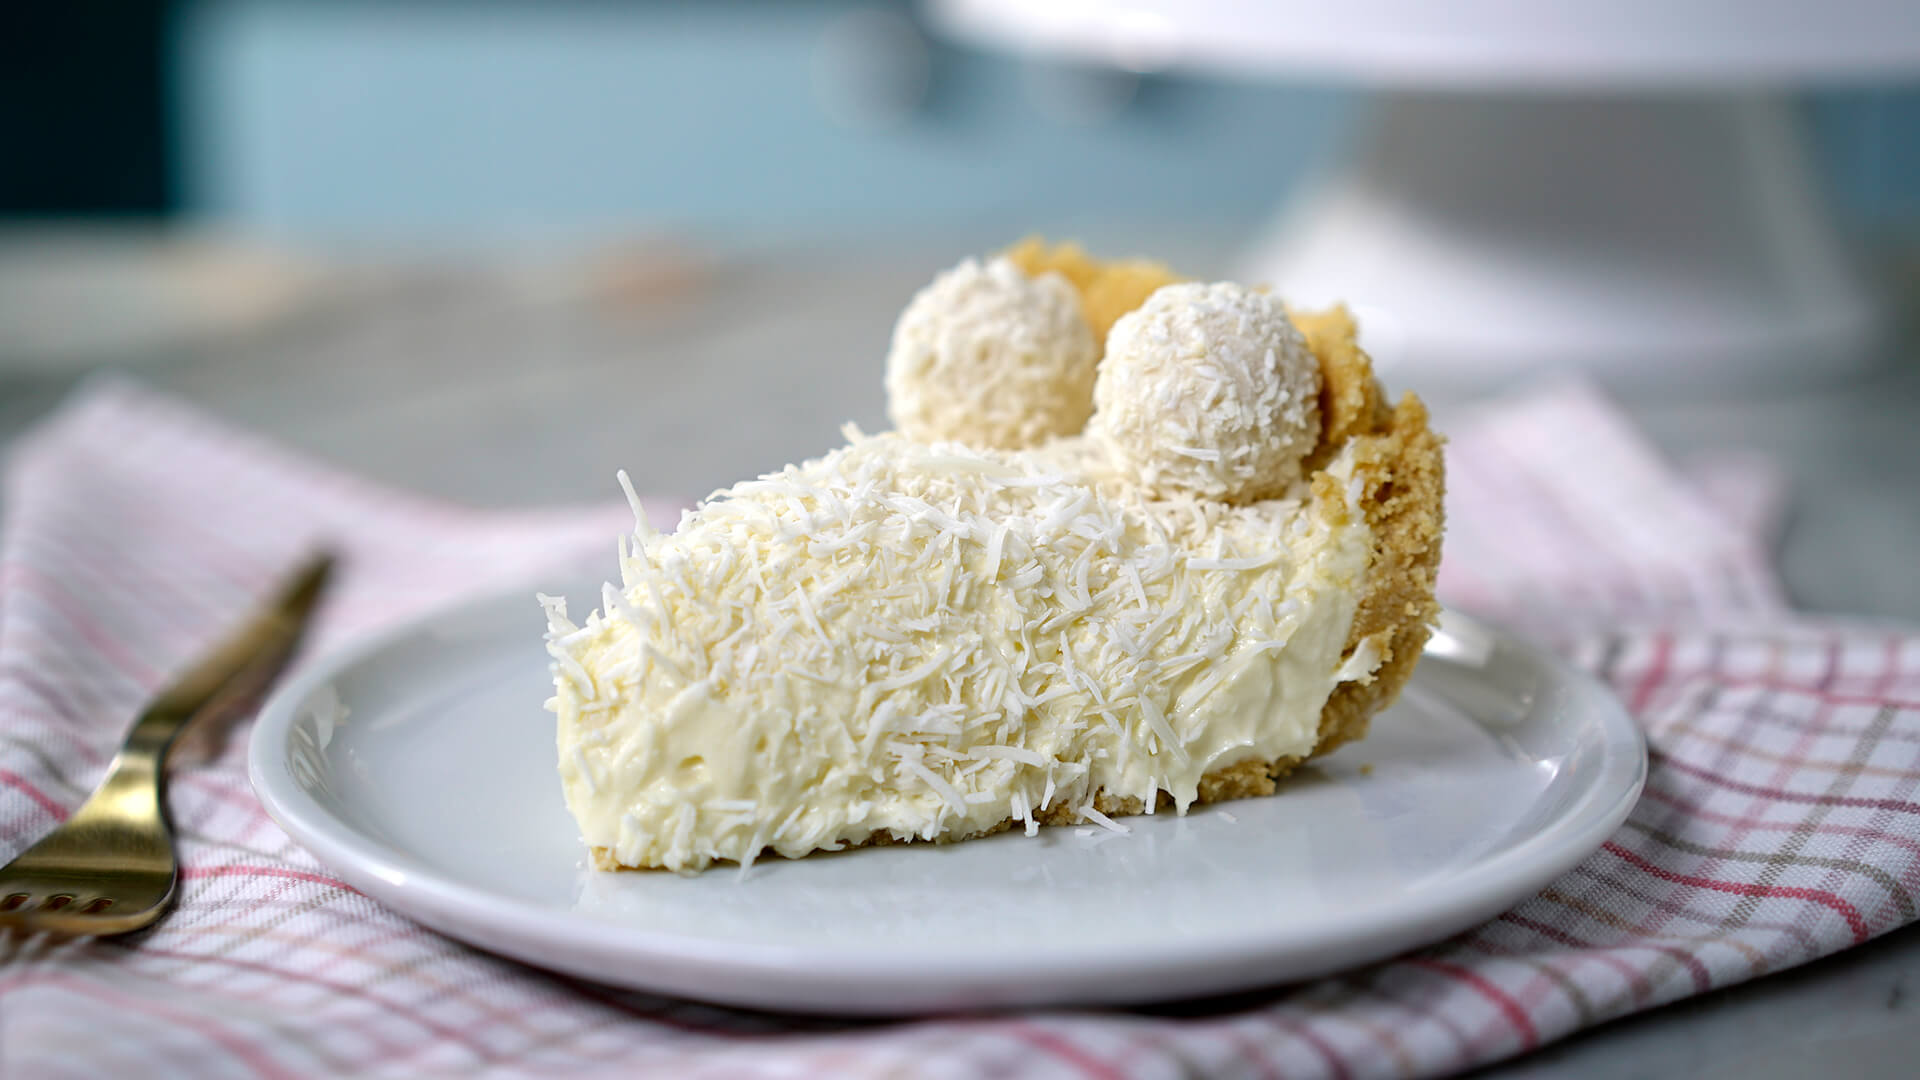 Cheesecake Rafaello